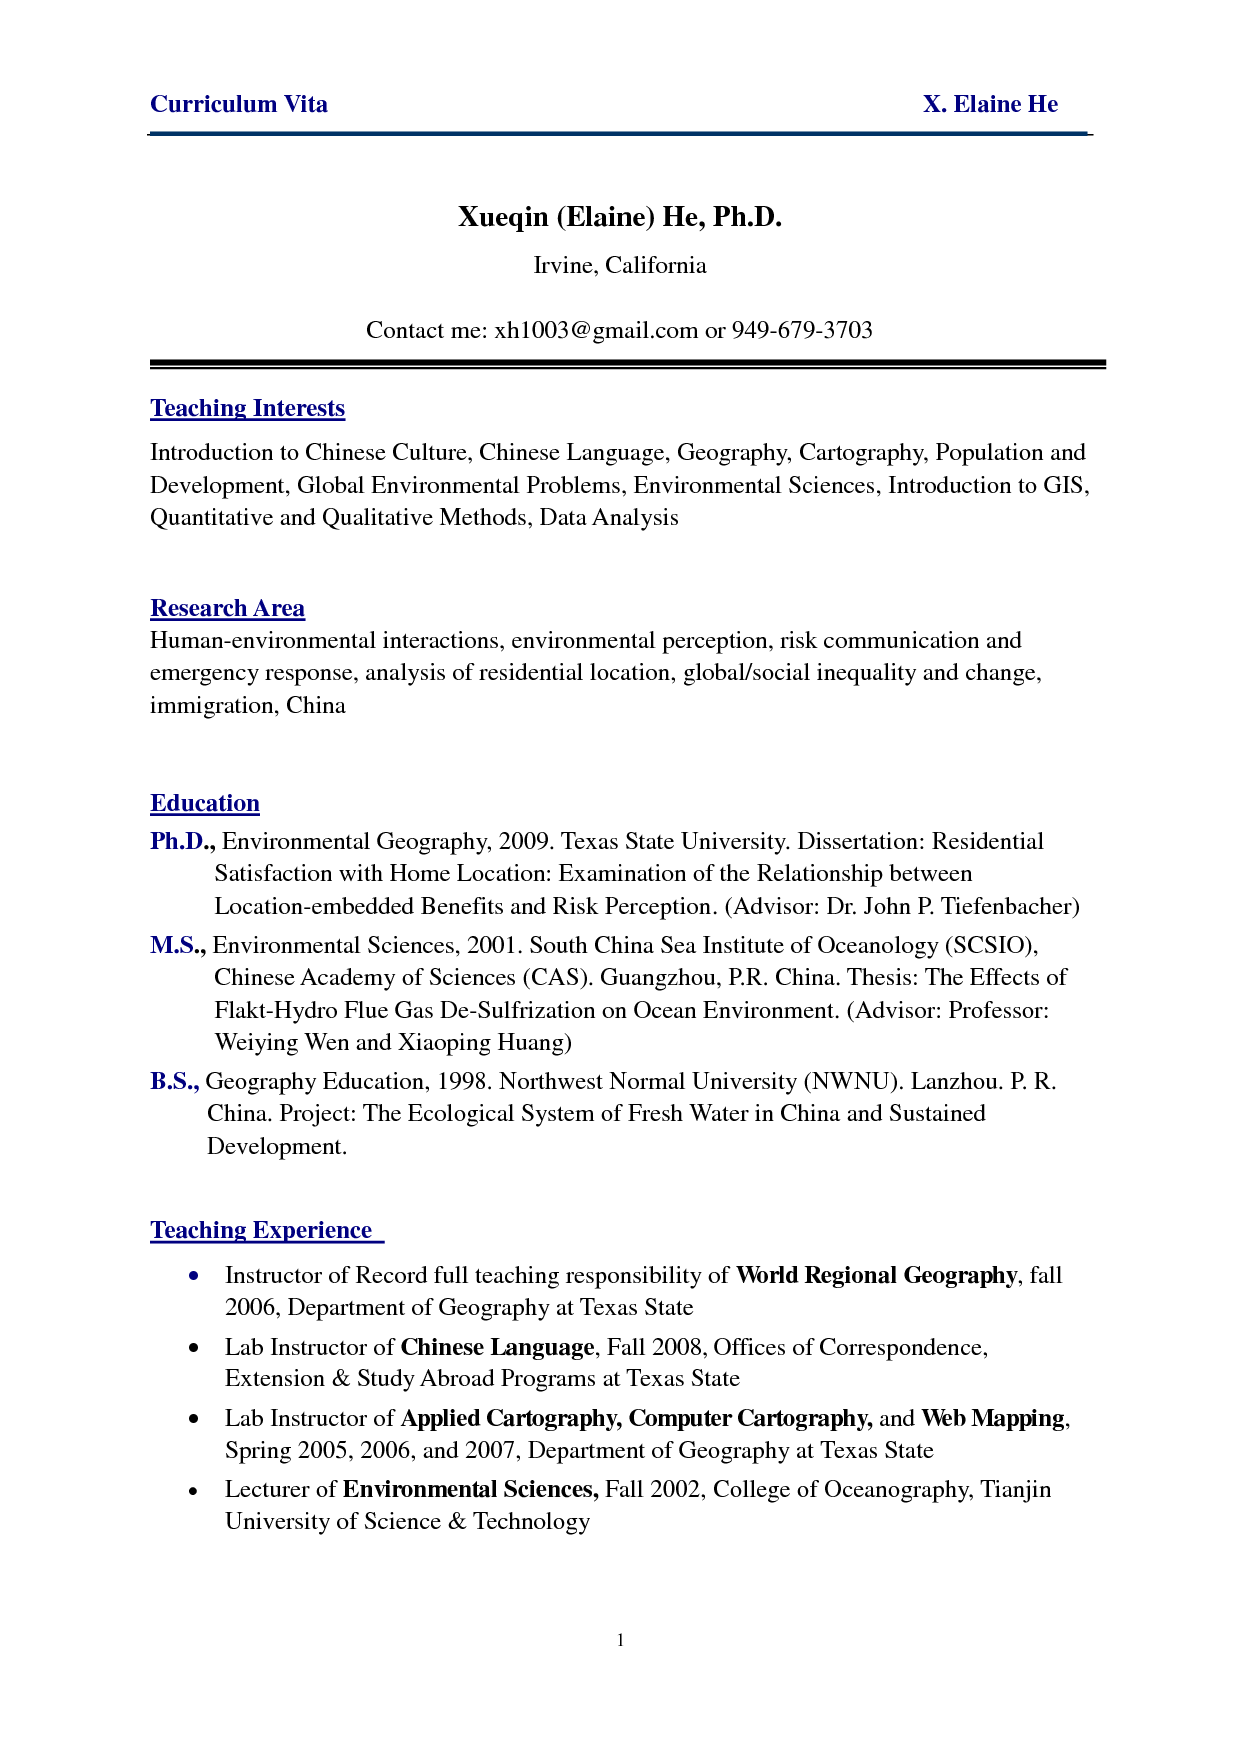 Cover Letter For Resume Examples For Students New Grad Lpn Resume Sample  Nursing Hacked  Pinterest  Interiors